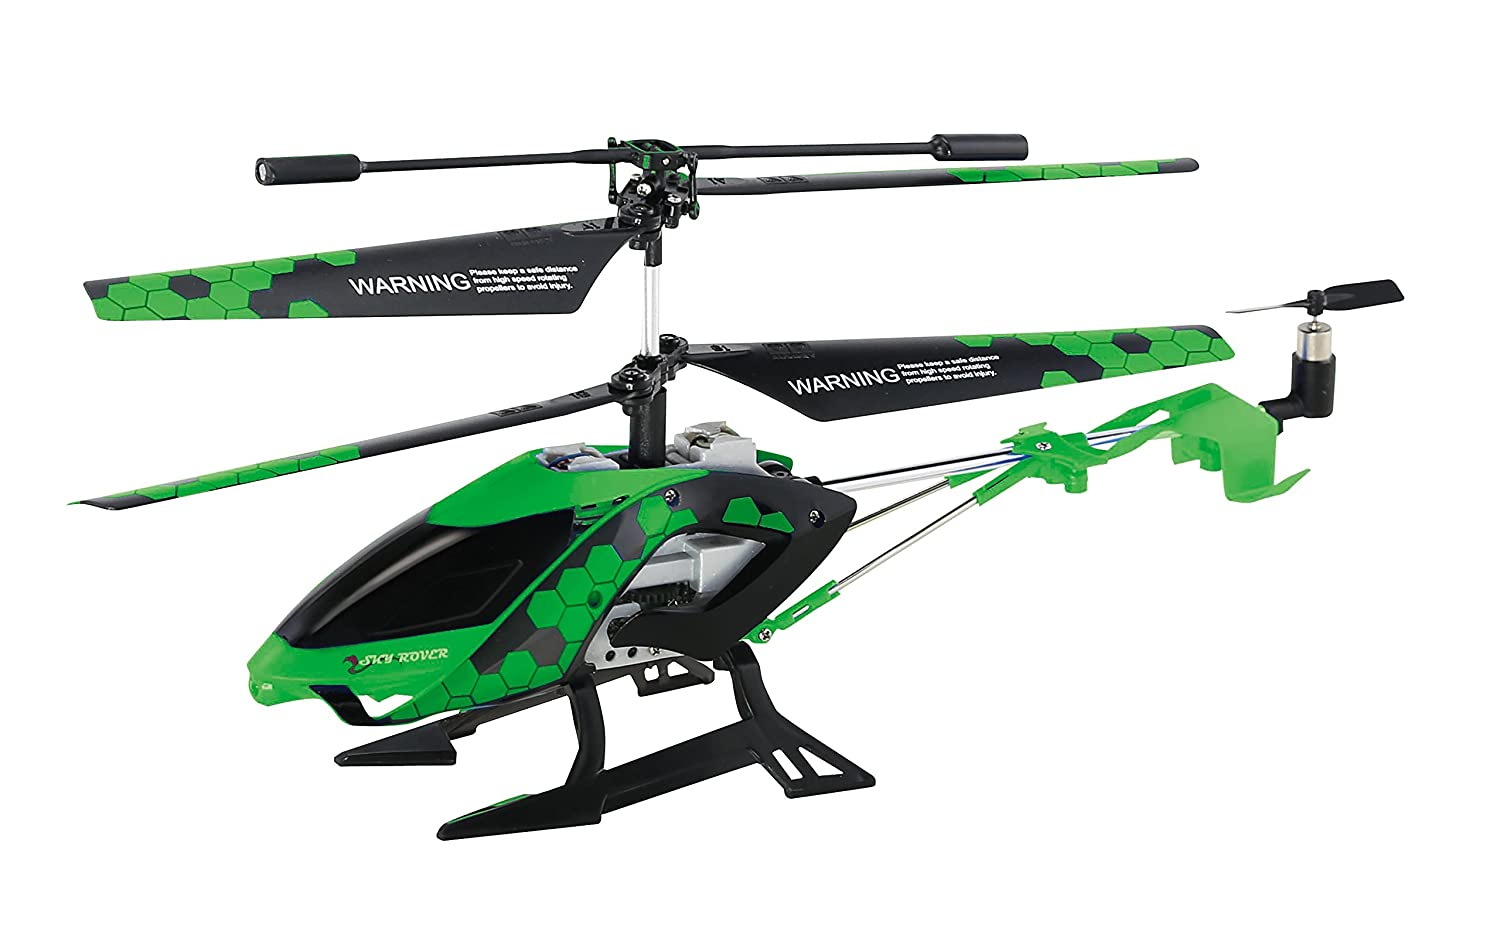 Sky Rover Stalker, 3 Channel IR Gyro Helicopter, Green Vehicle by SkyRover